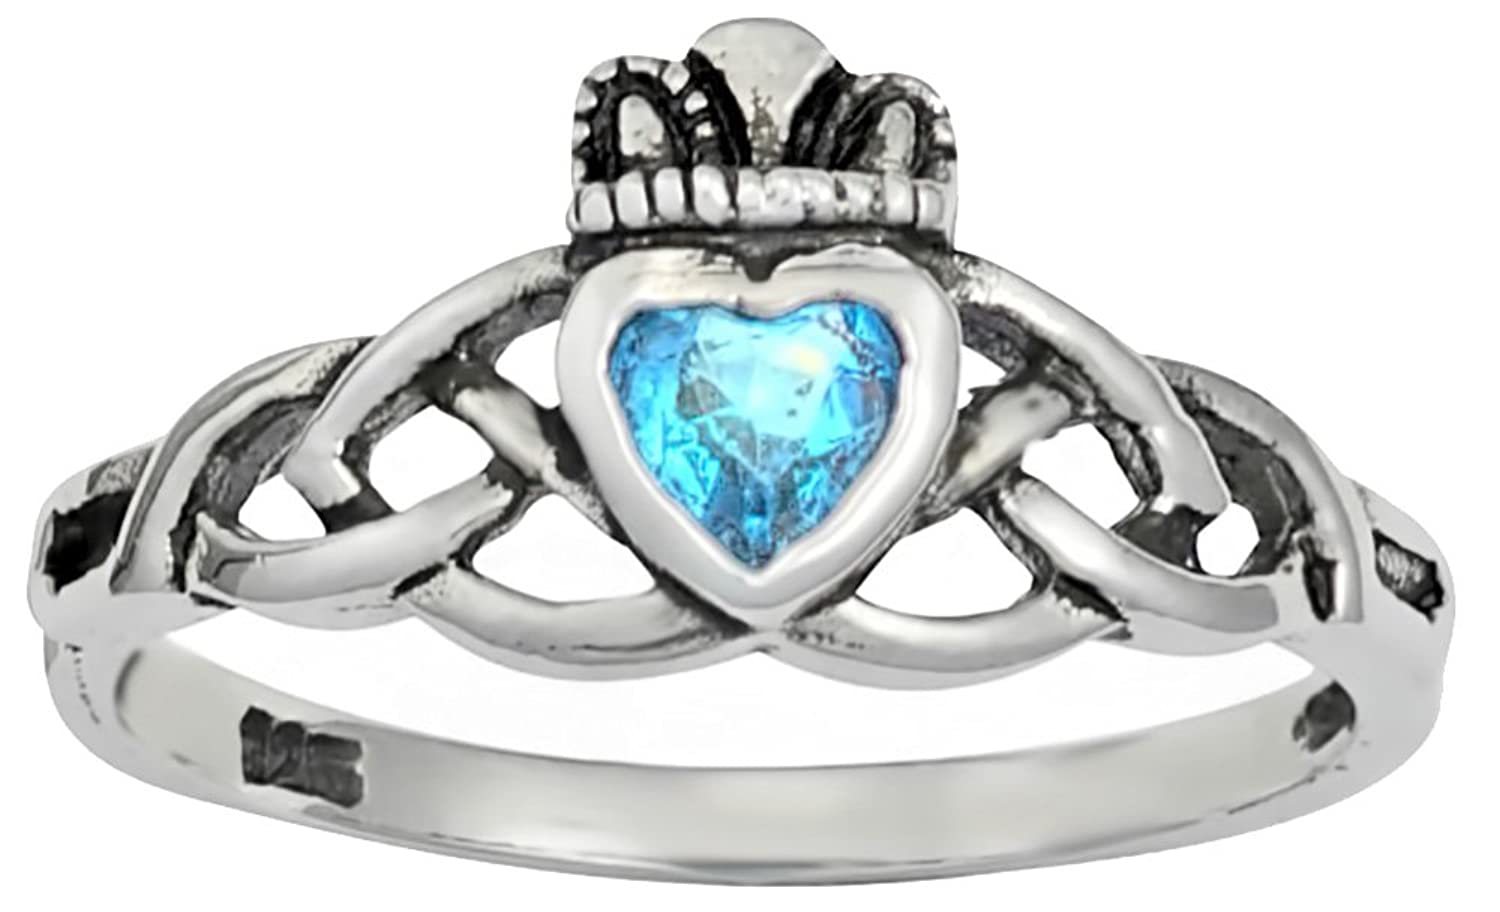 .925 Sterling Silver Traditional Celtic Knot .25 cttw Aqua CZ Simulated Diamond Claddagh Ring